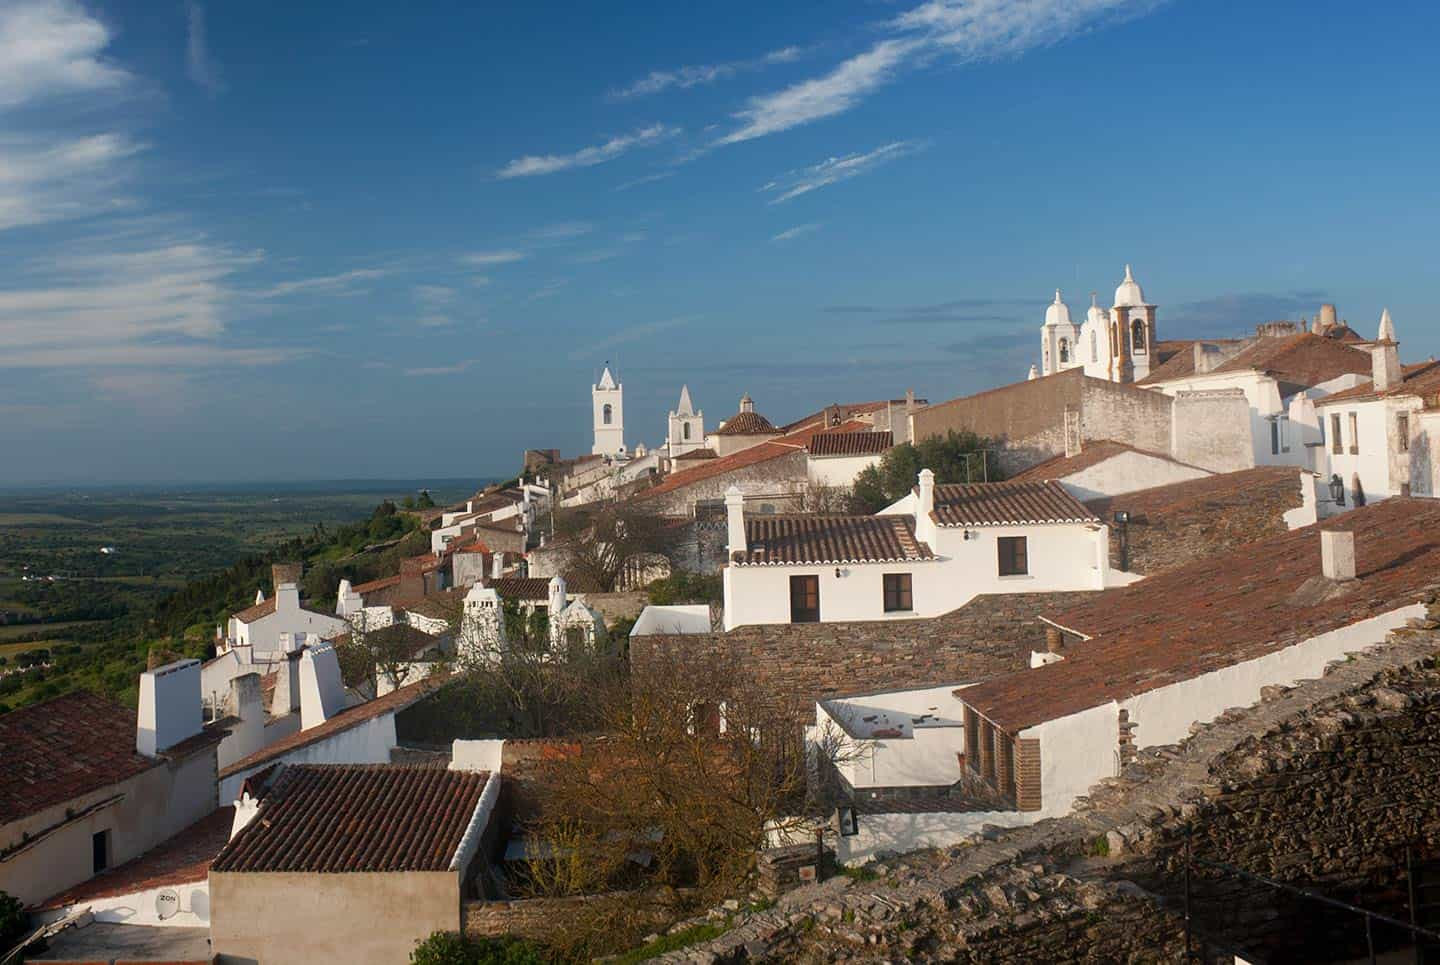 Portugal Tours Alentejo Image of Monsaraz village from castle ramparts